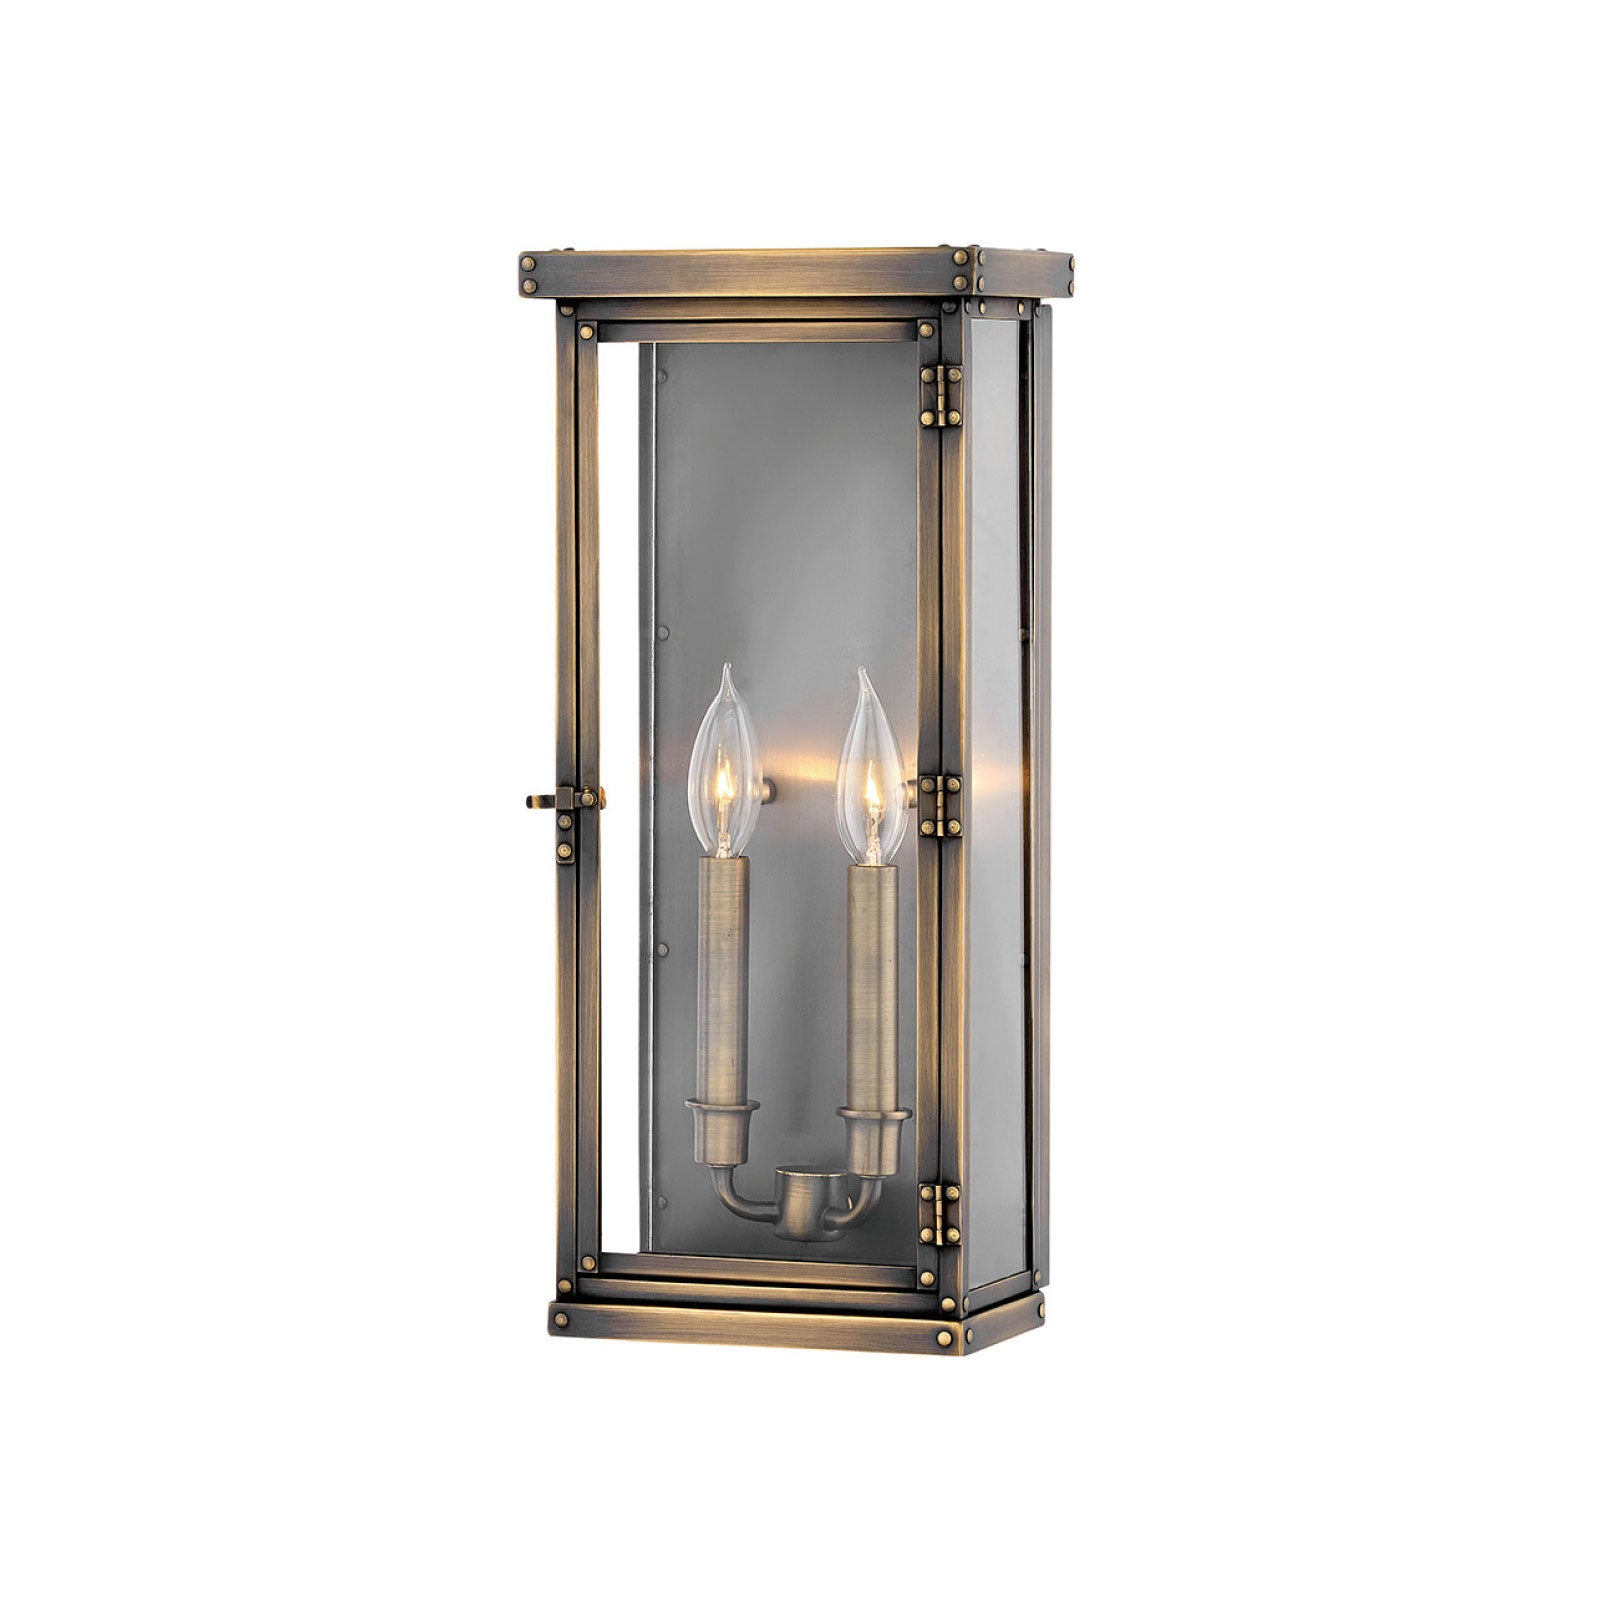 Lexington Wall Lantern - Large